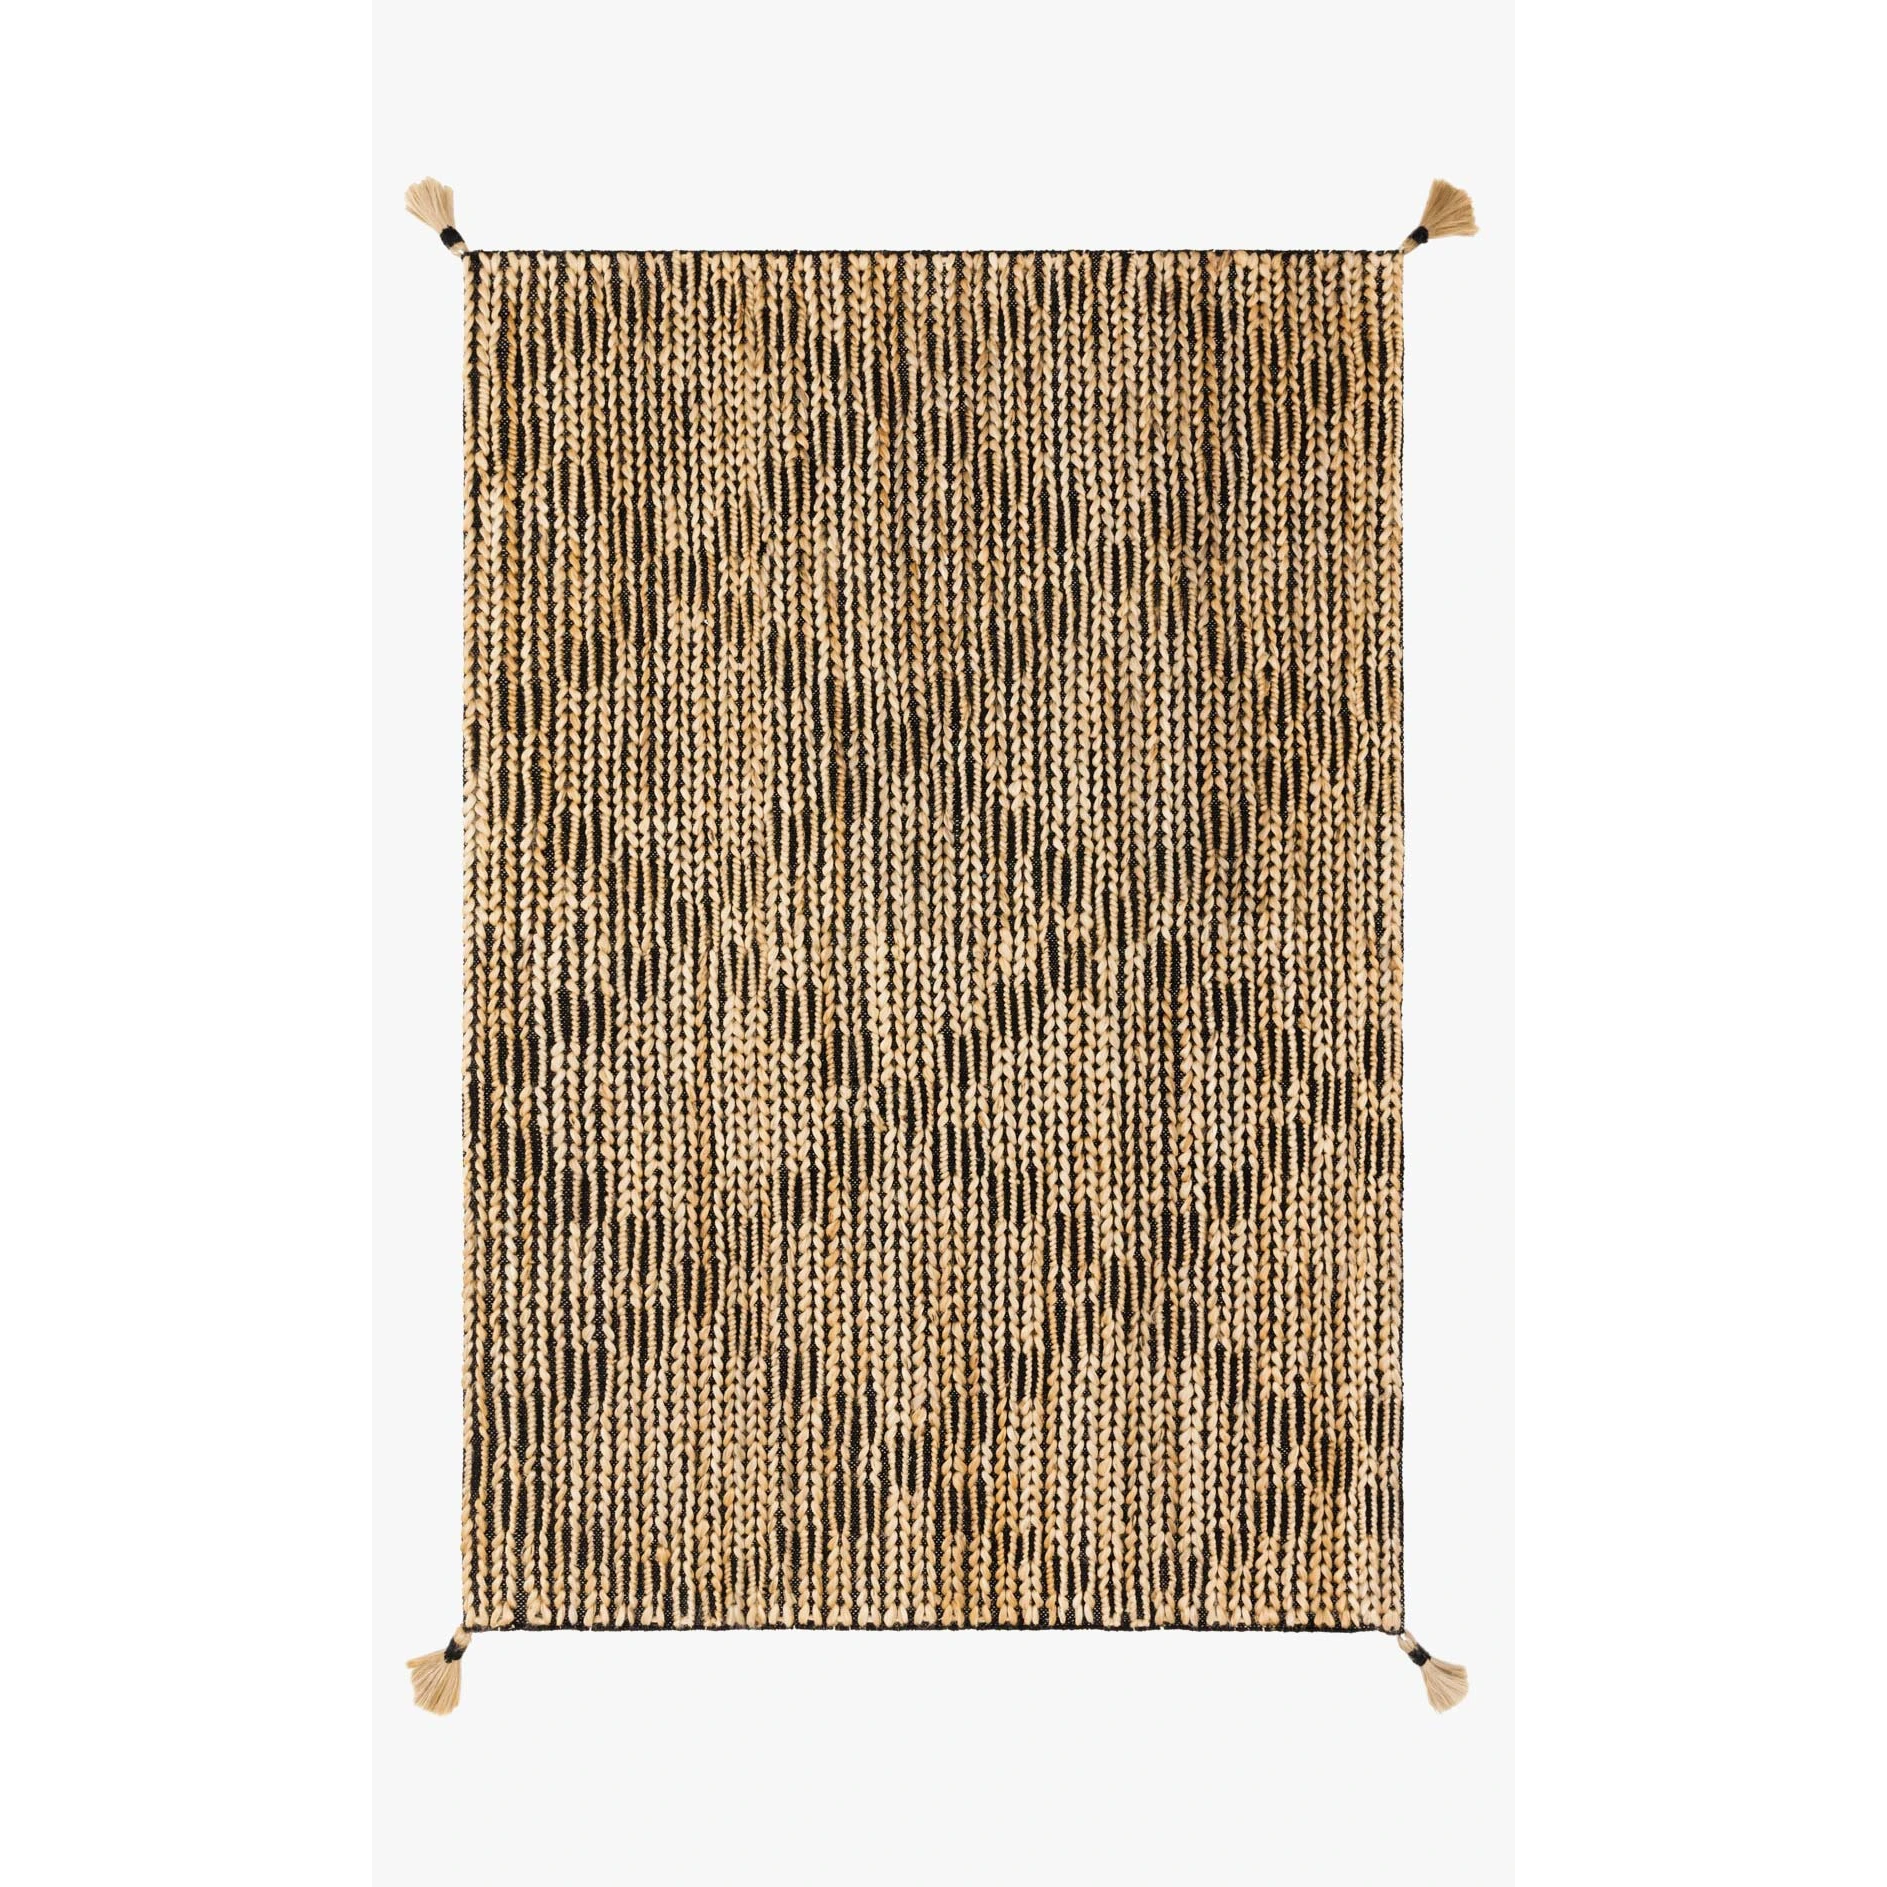 Justina Blakeney Playa Rug Collection - Ply-02 Black/Natural-Loloi Rugs-Blue Hand Home